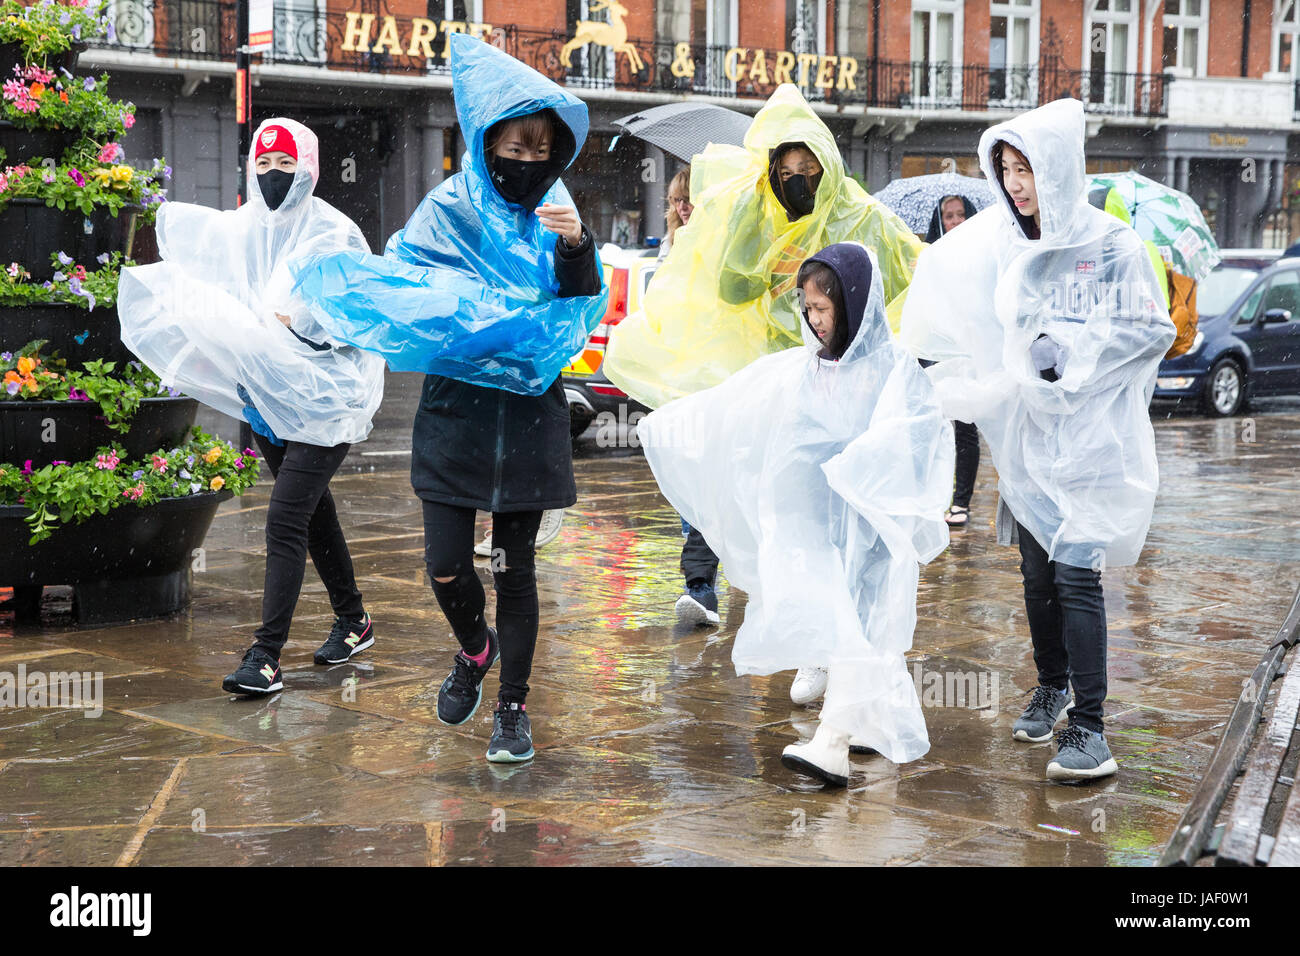 Windsor, UK. 6th June, 2017. Tourists make their way towards Windsor Castle in heavy rain with umbrellas and assorted - Stock Image